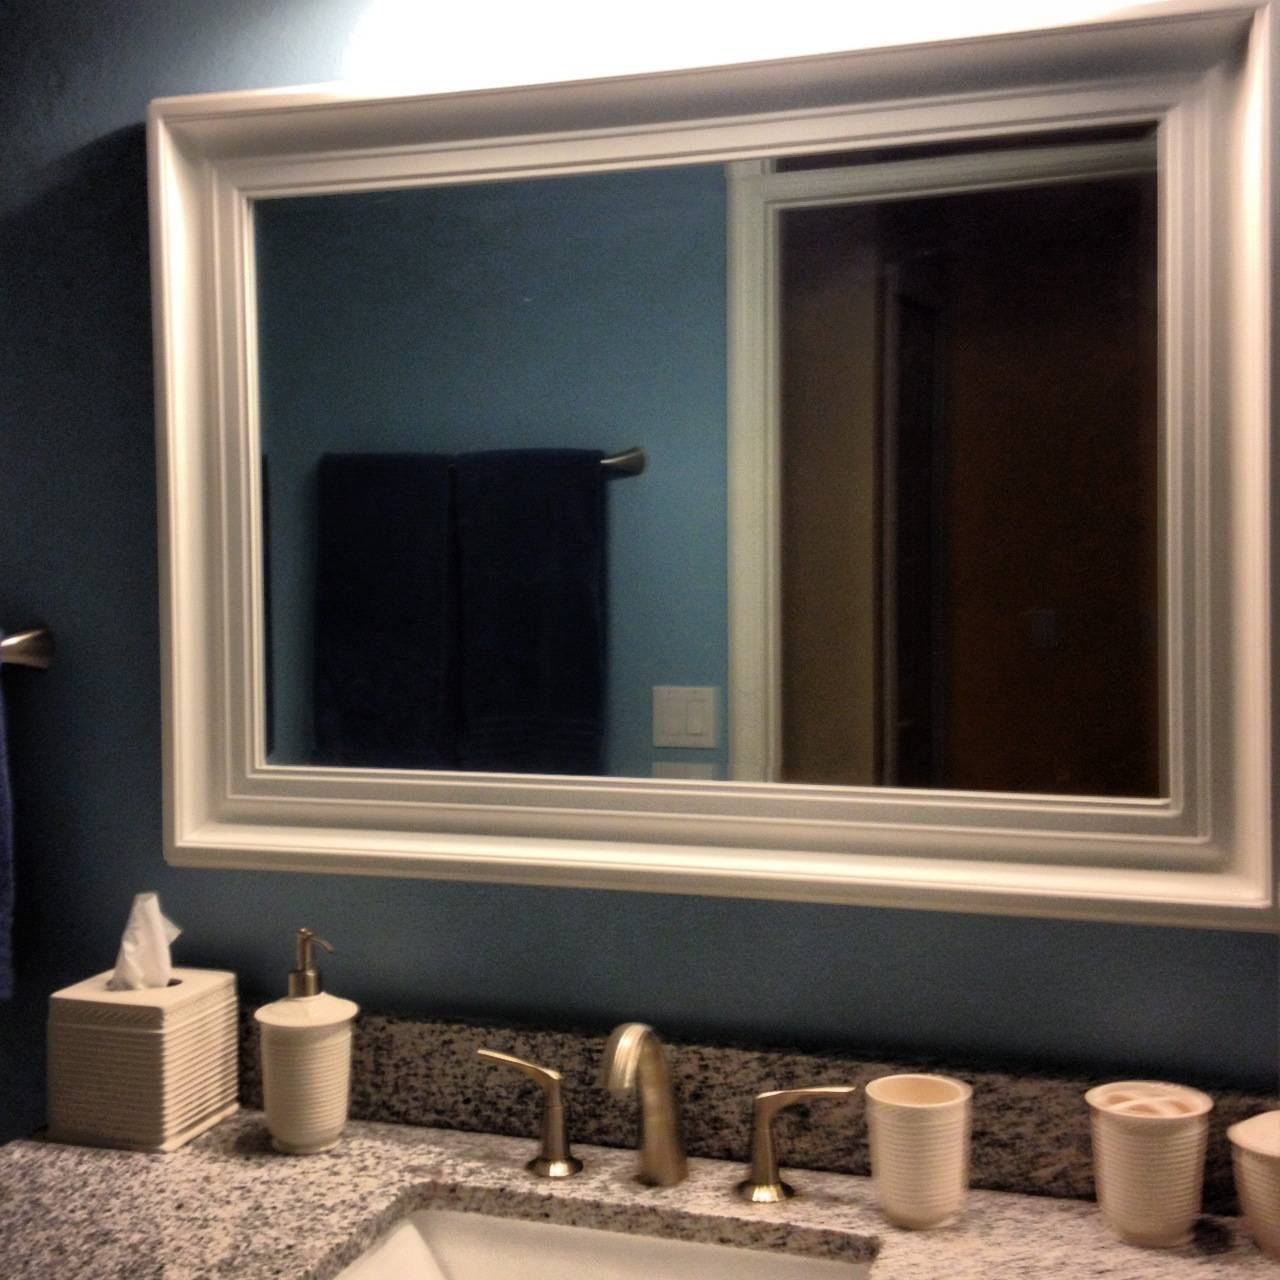 Blue Bathroom Mirror Frames : Making Bathroom Mirror Frames – Home pertaining to Mirrors With Blue Frame (Image 8 of 25)